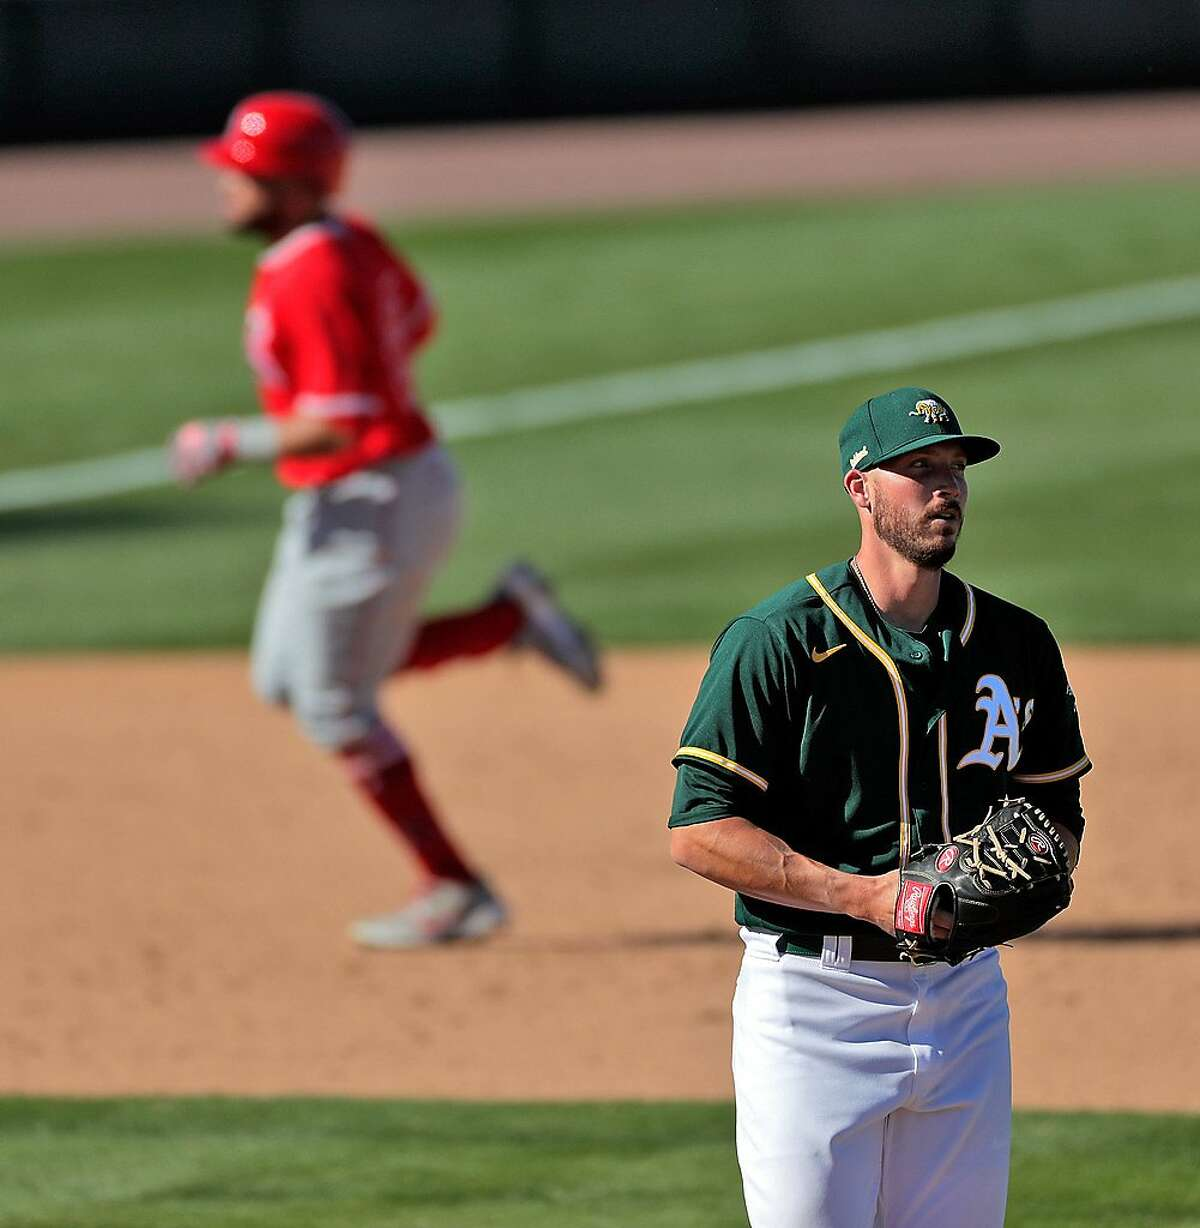 Nik Turley (23) walks back to the mound as Jose Rojas (23) rounds the bases after a solo homerun in the seventh inning as the Oakland Athletics played the Los Angeles Angels at Hohokam Stadium in Mesa, Ariz., on Friday, March 5, 2021.